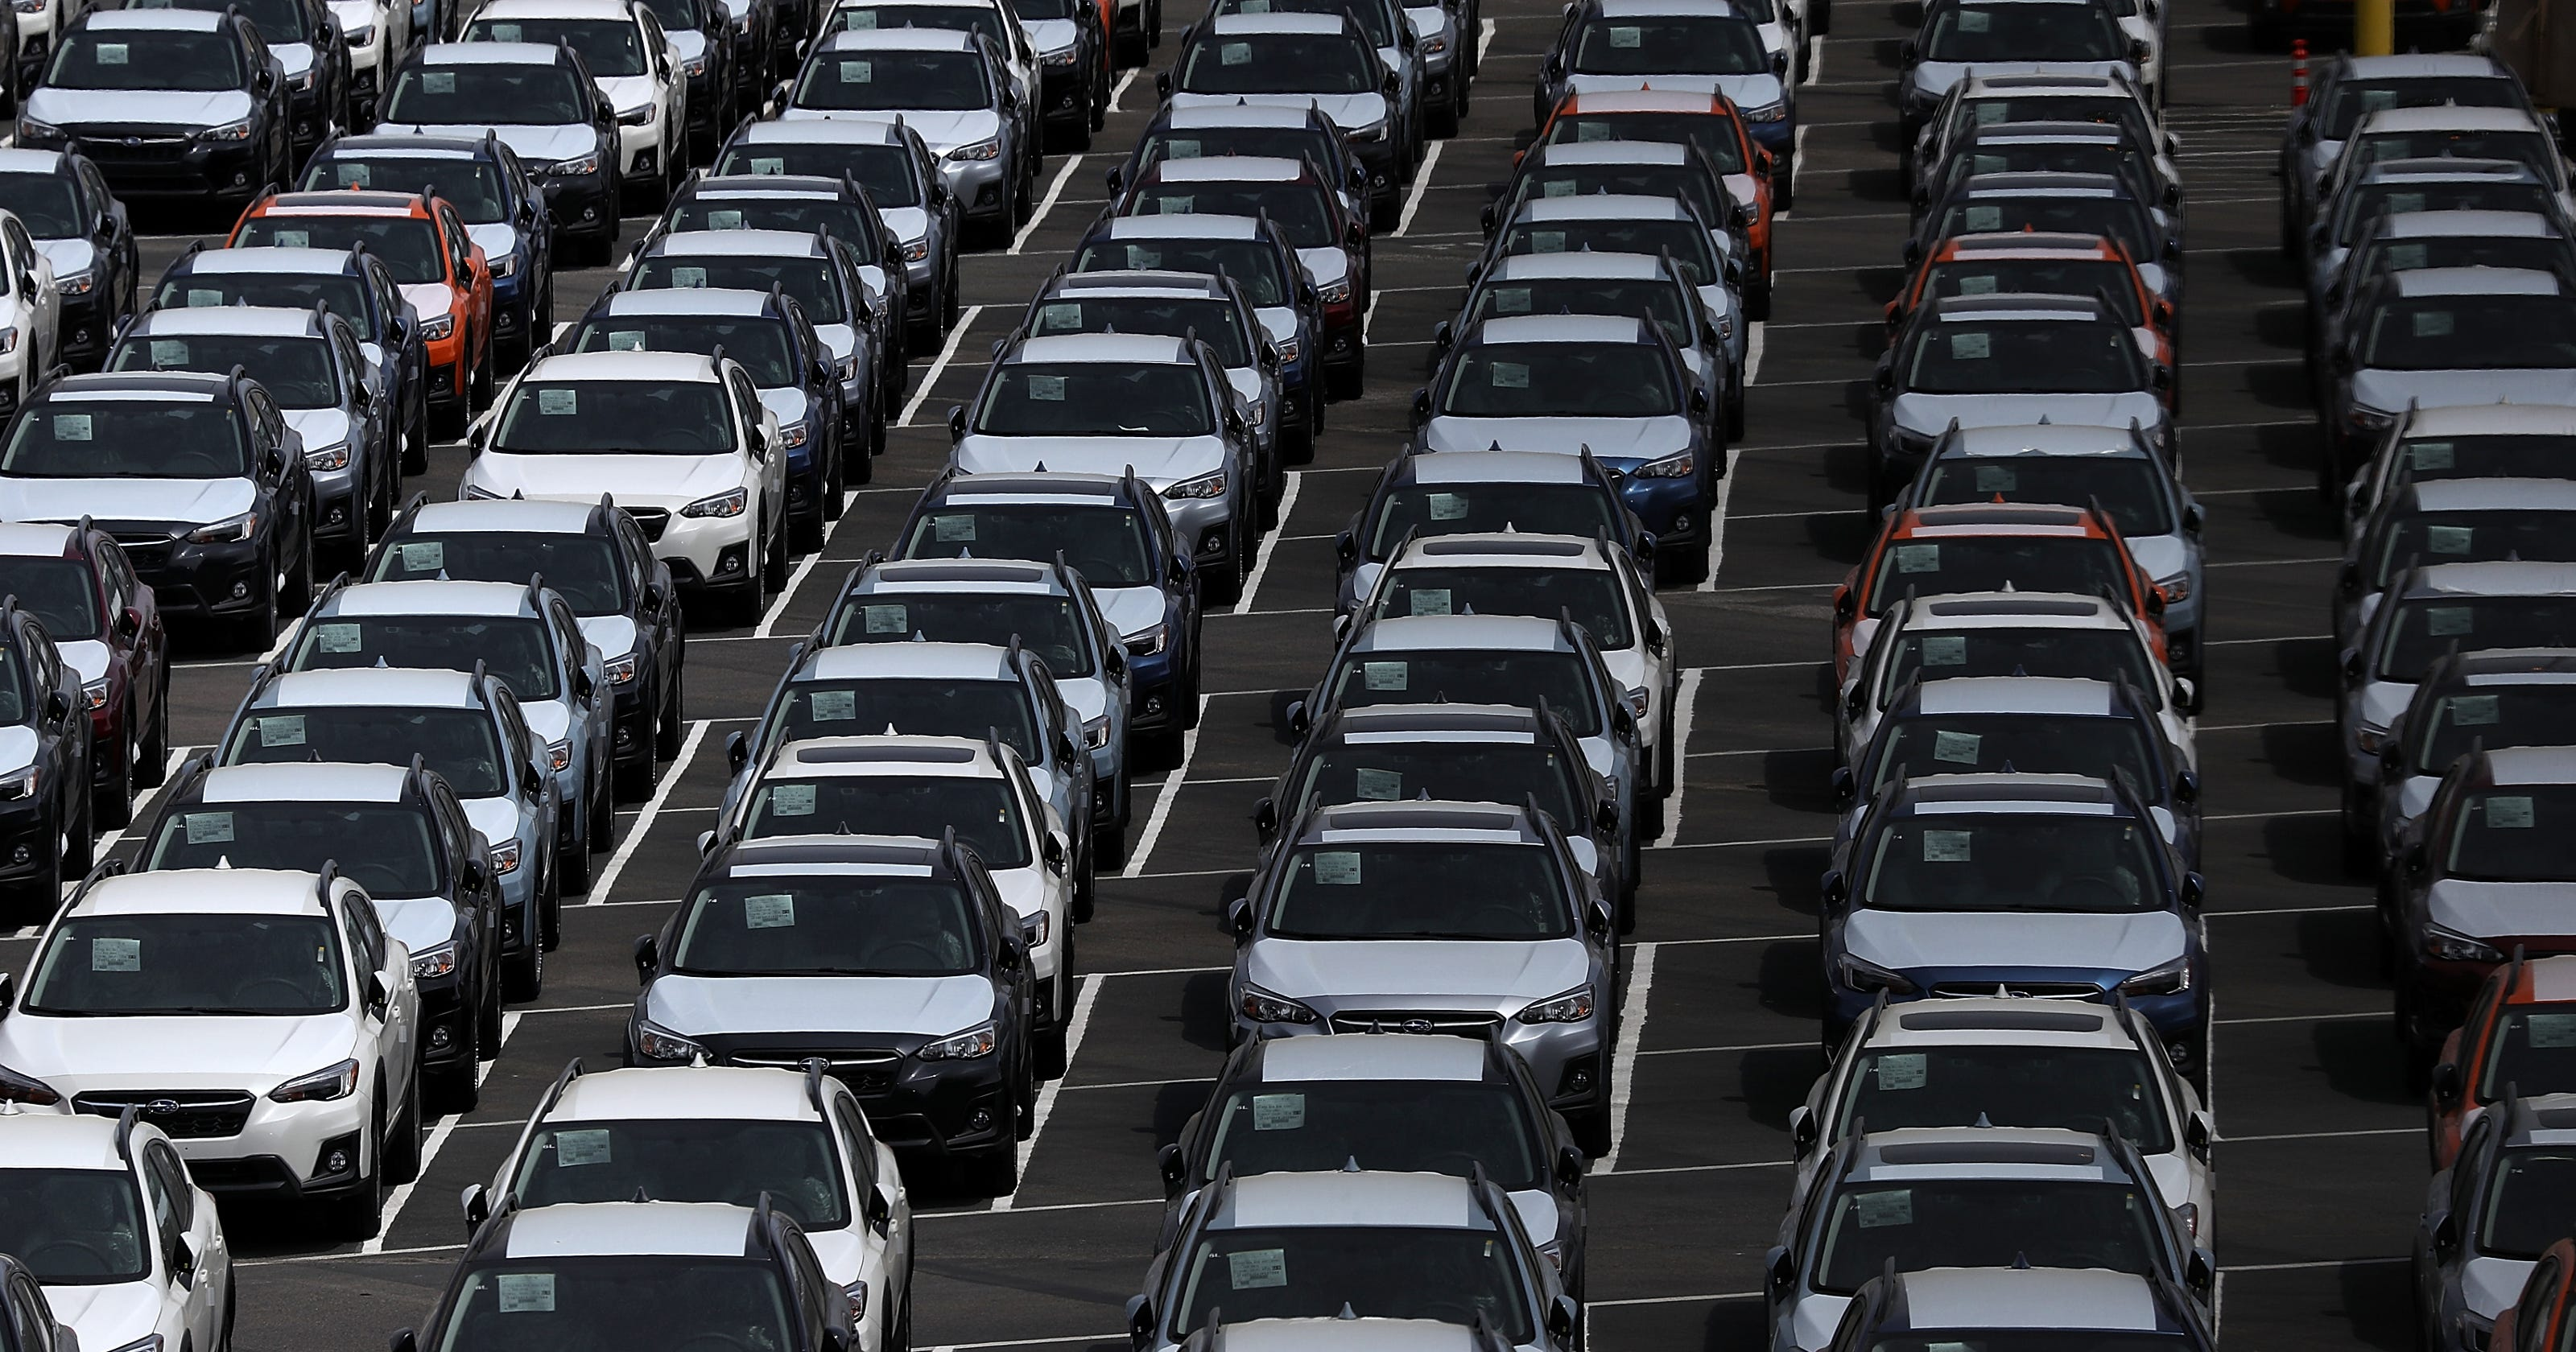 Buying a car: When to walk away from a dealership